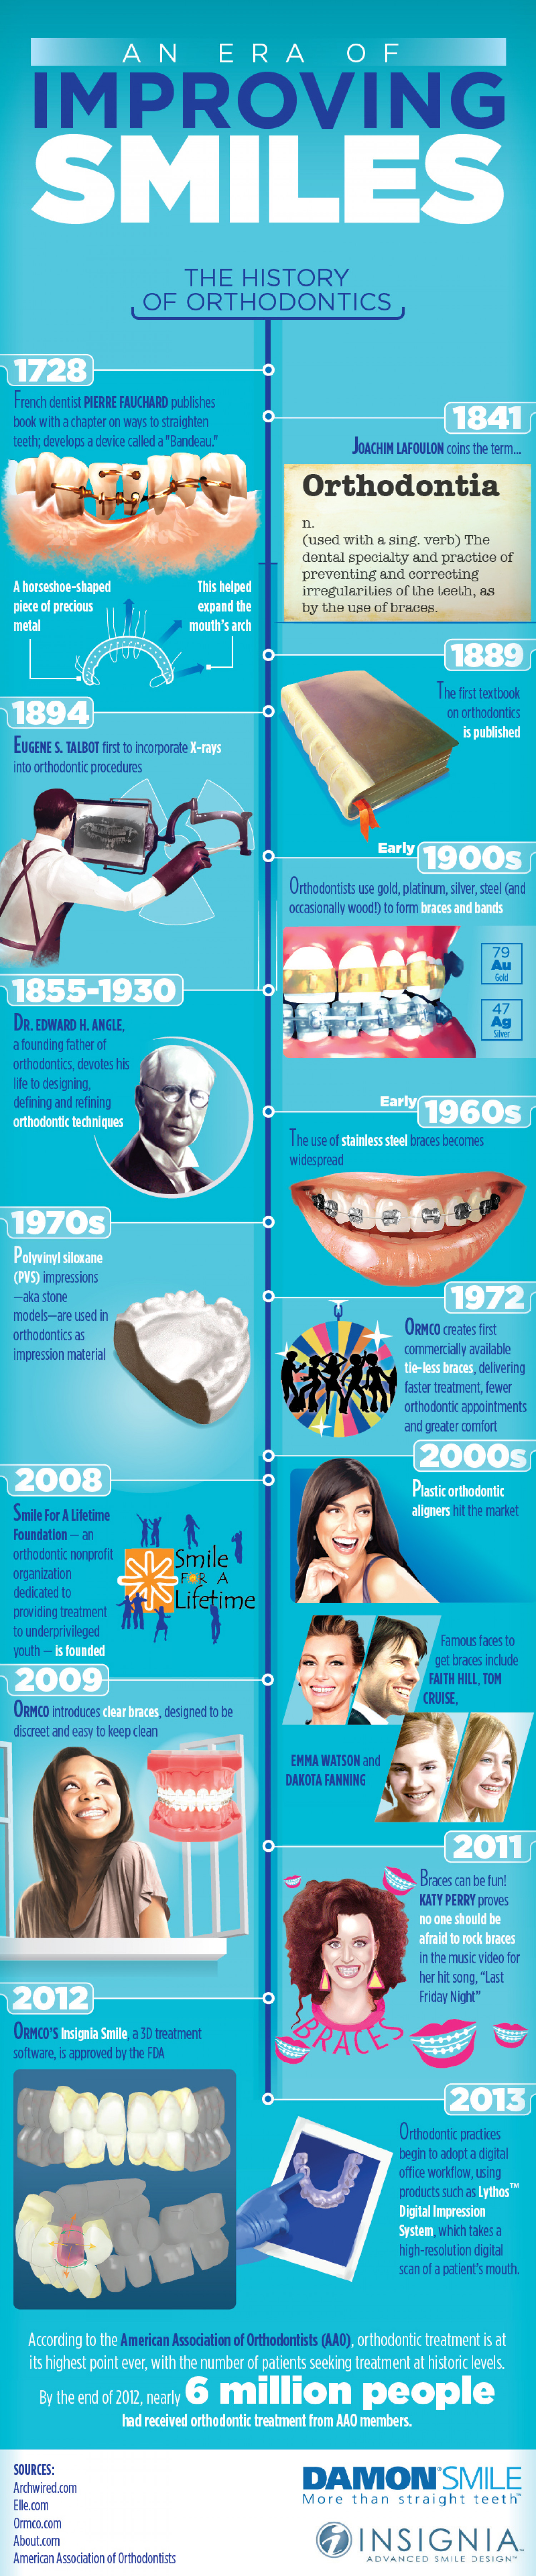 An Era of Improving Smiles Infographic